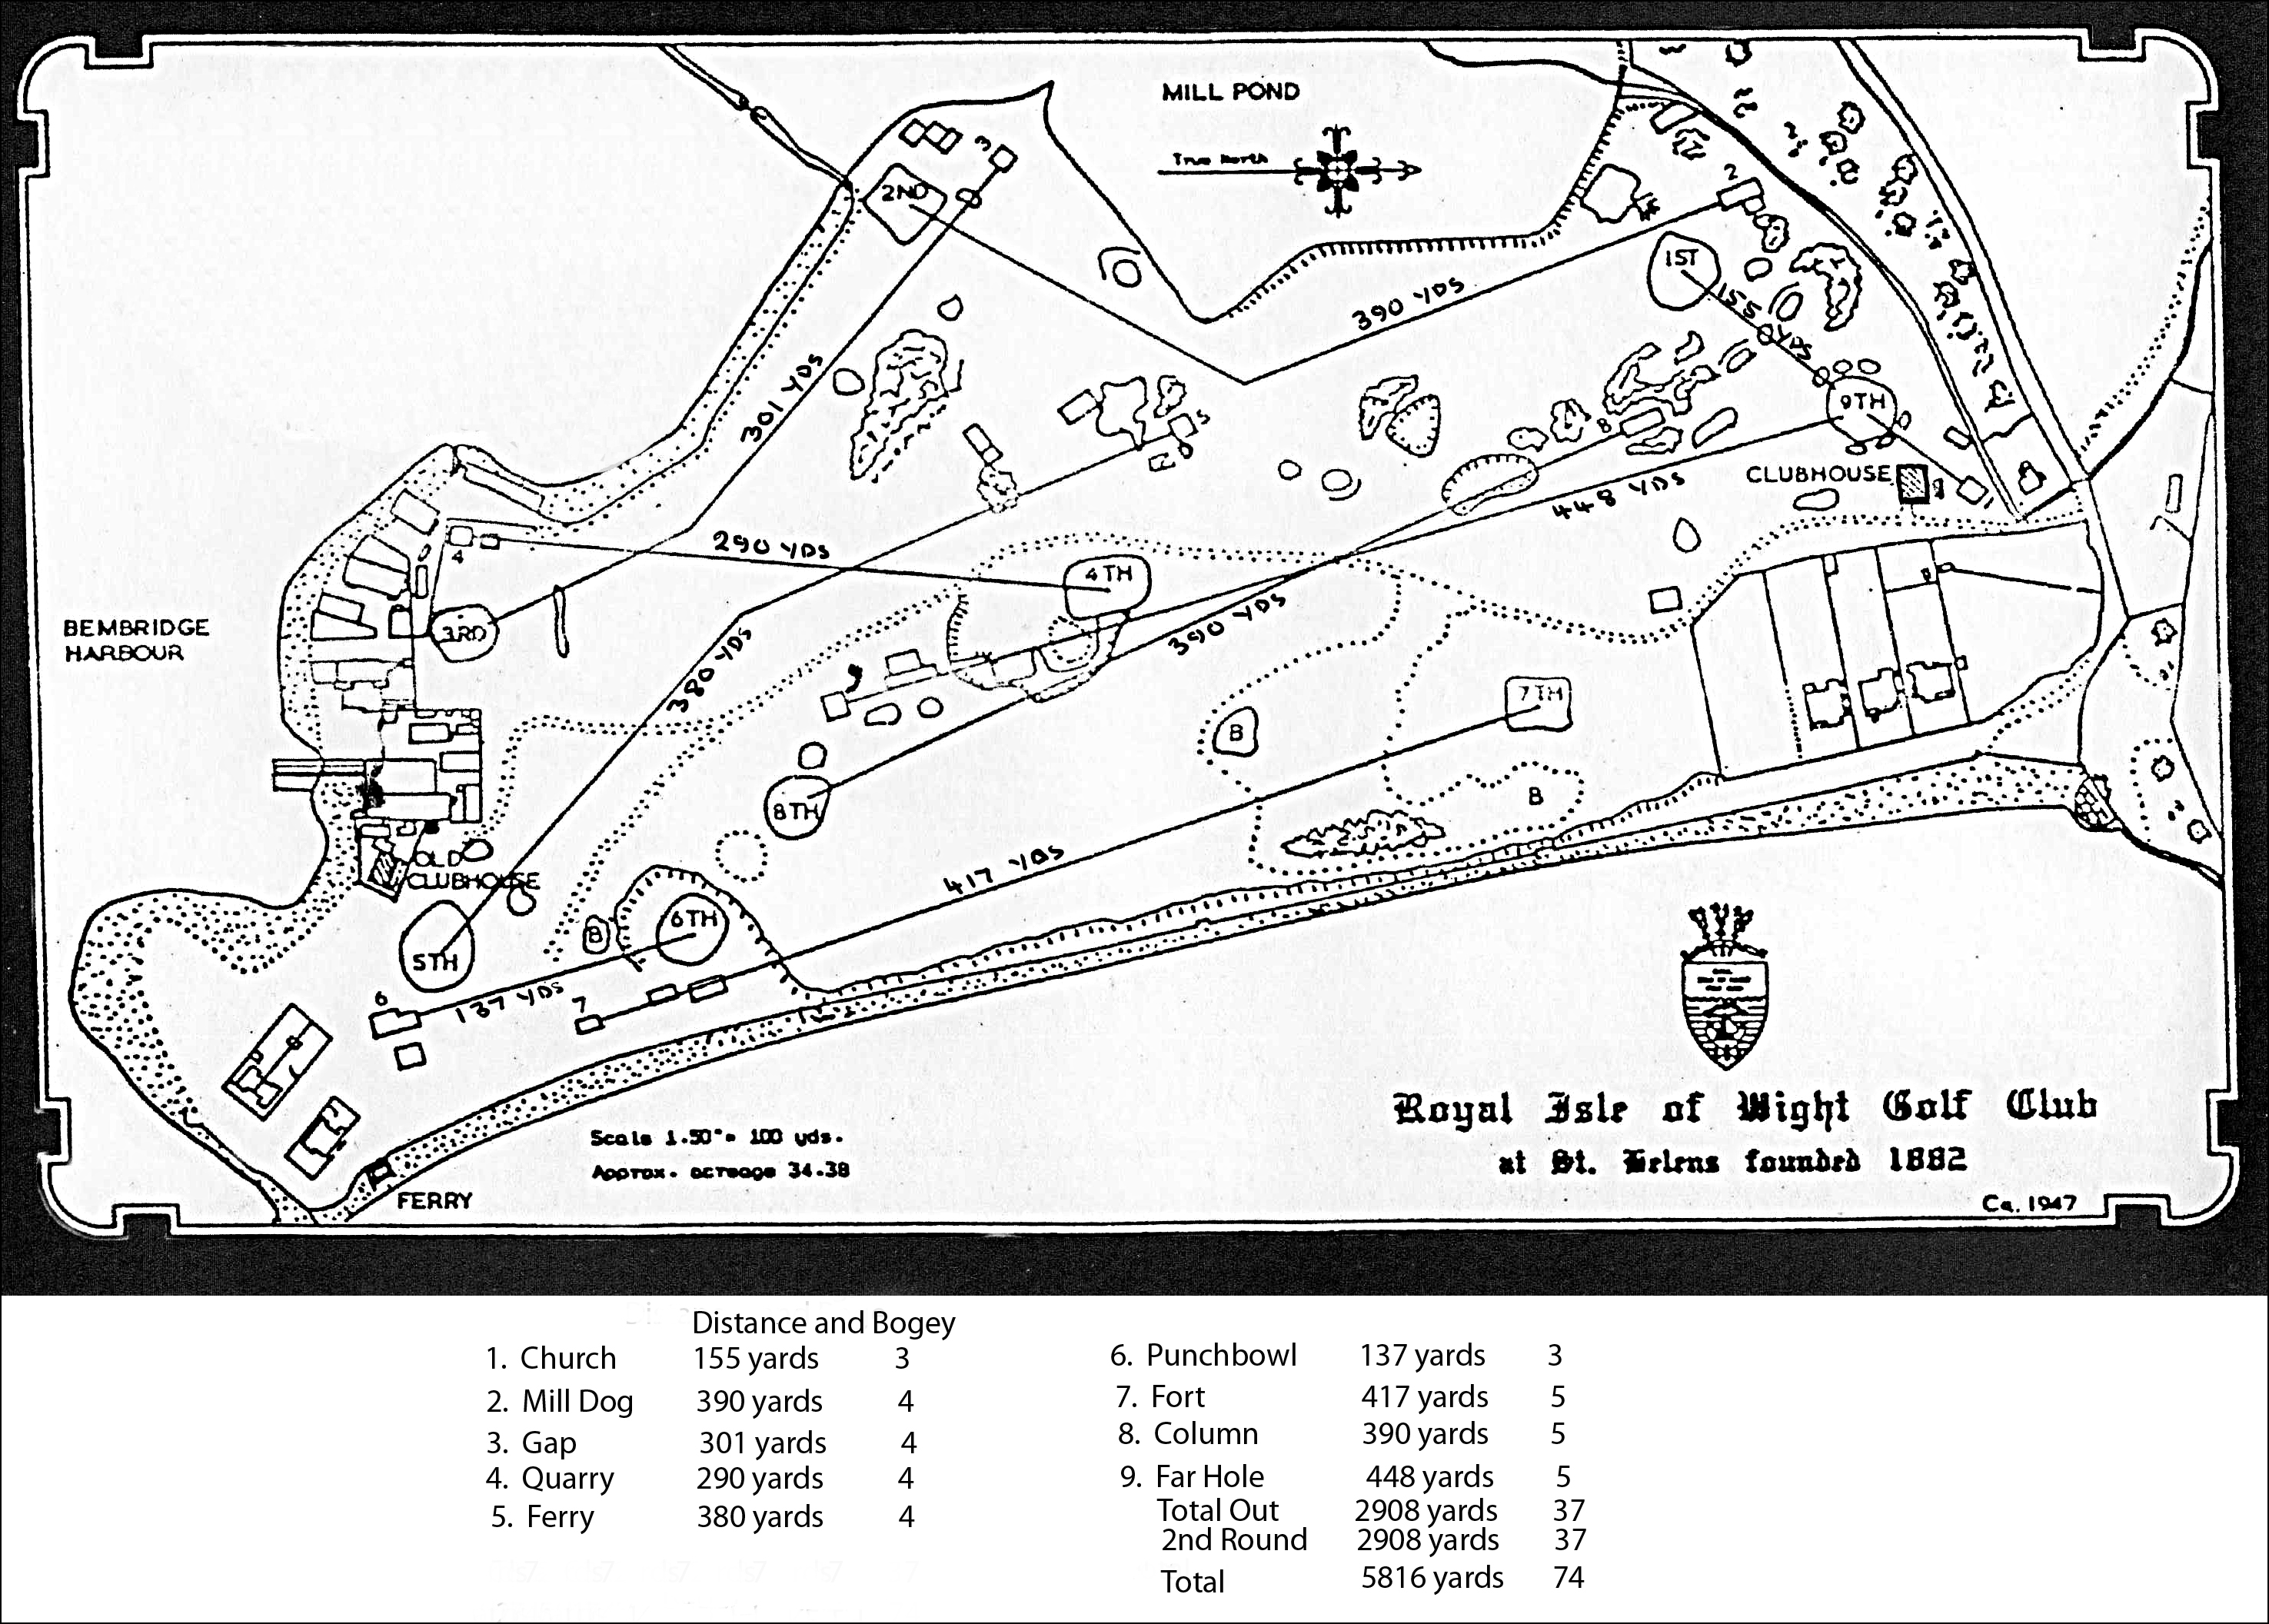 History: The Royal Isle of Wight Golf Club